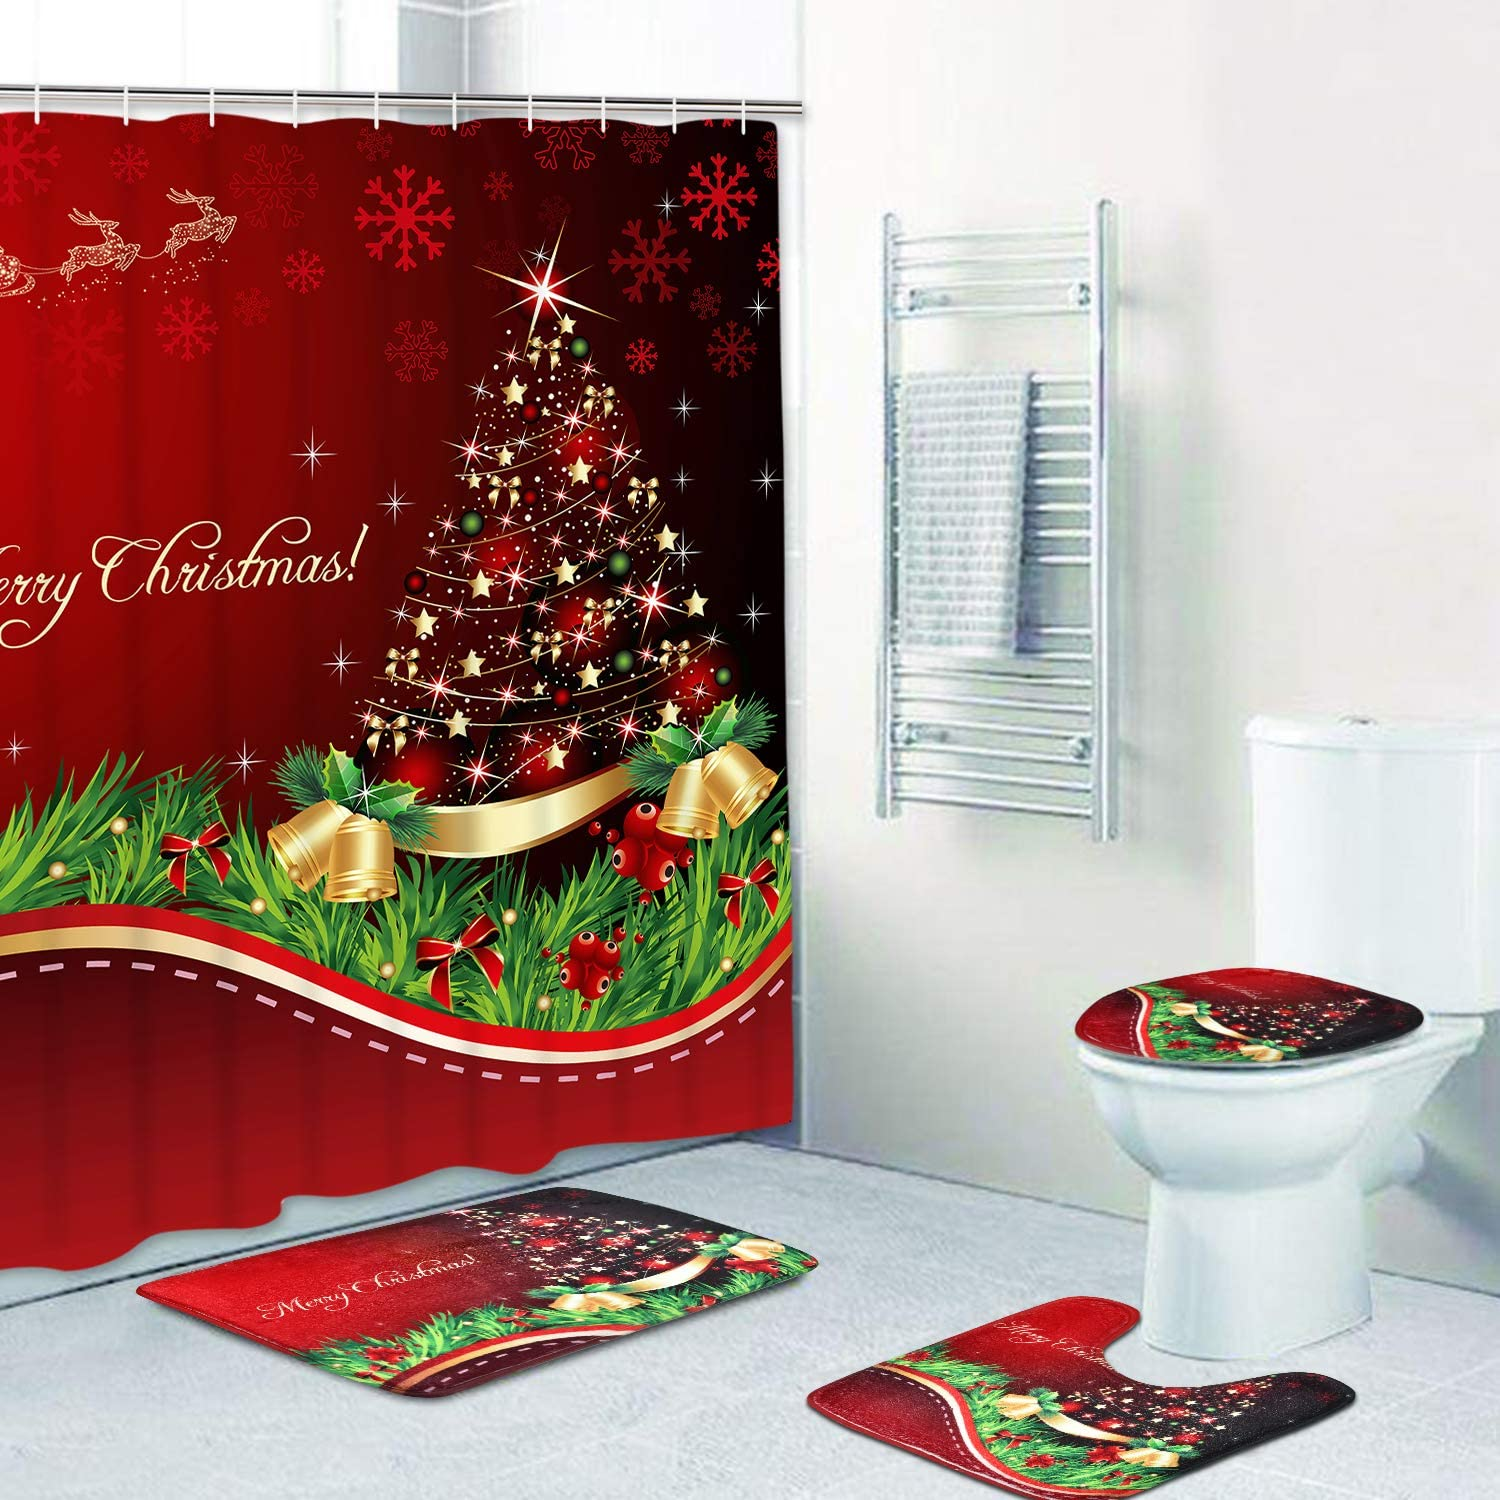 PANDAYAQ 4 Pcs Merry Christmas Shower Curtain Sets with Non-Slip Rugs, Bath Mat, Toilet Lid Cover and 12 Hooks, Xmas Tree Ball Snowflake Red Shower Curtain for Christmas Decoration: Home & Kitchen